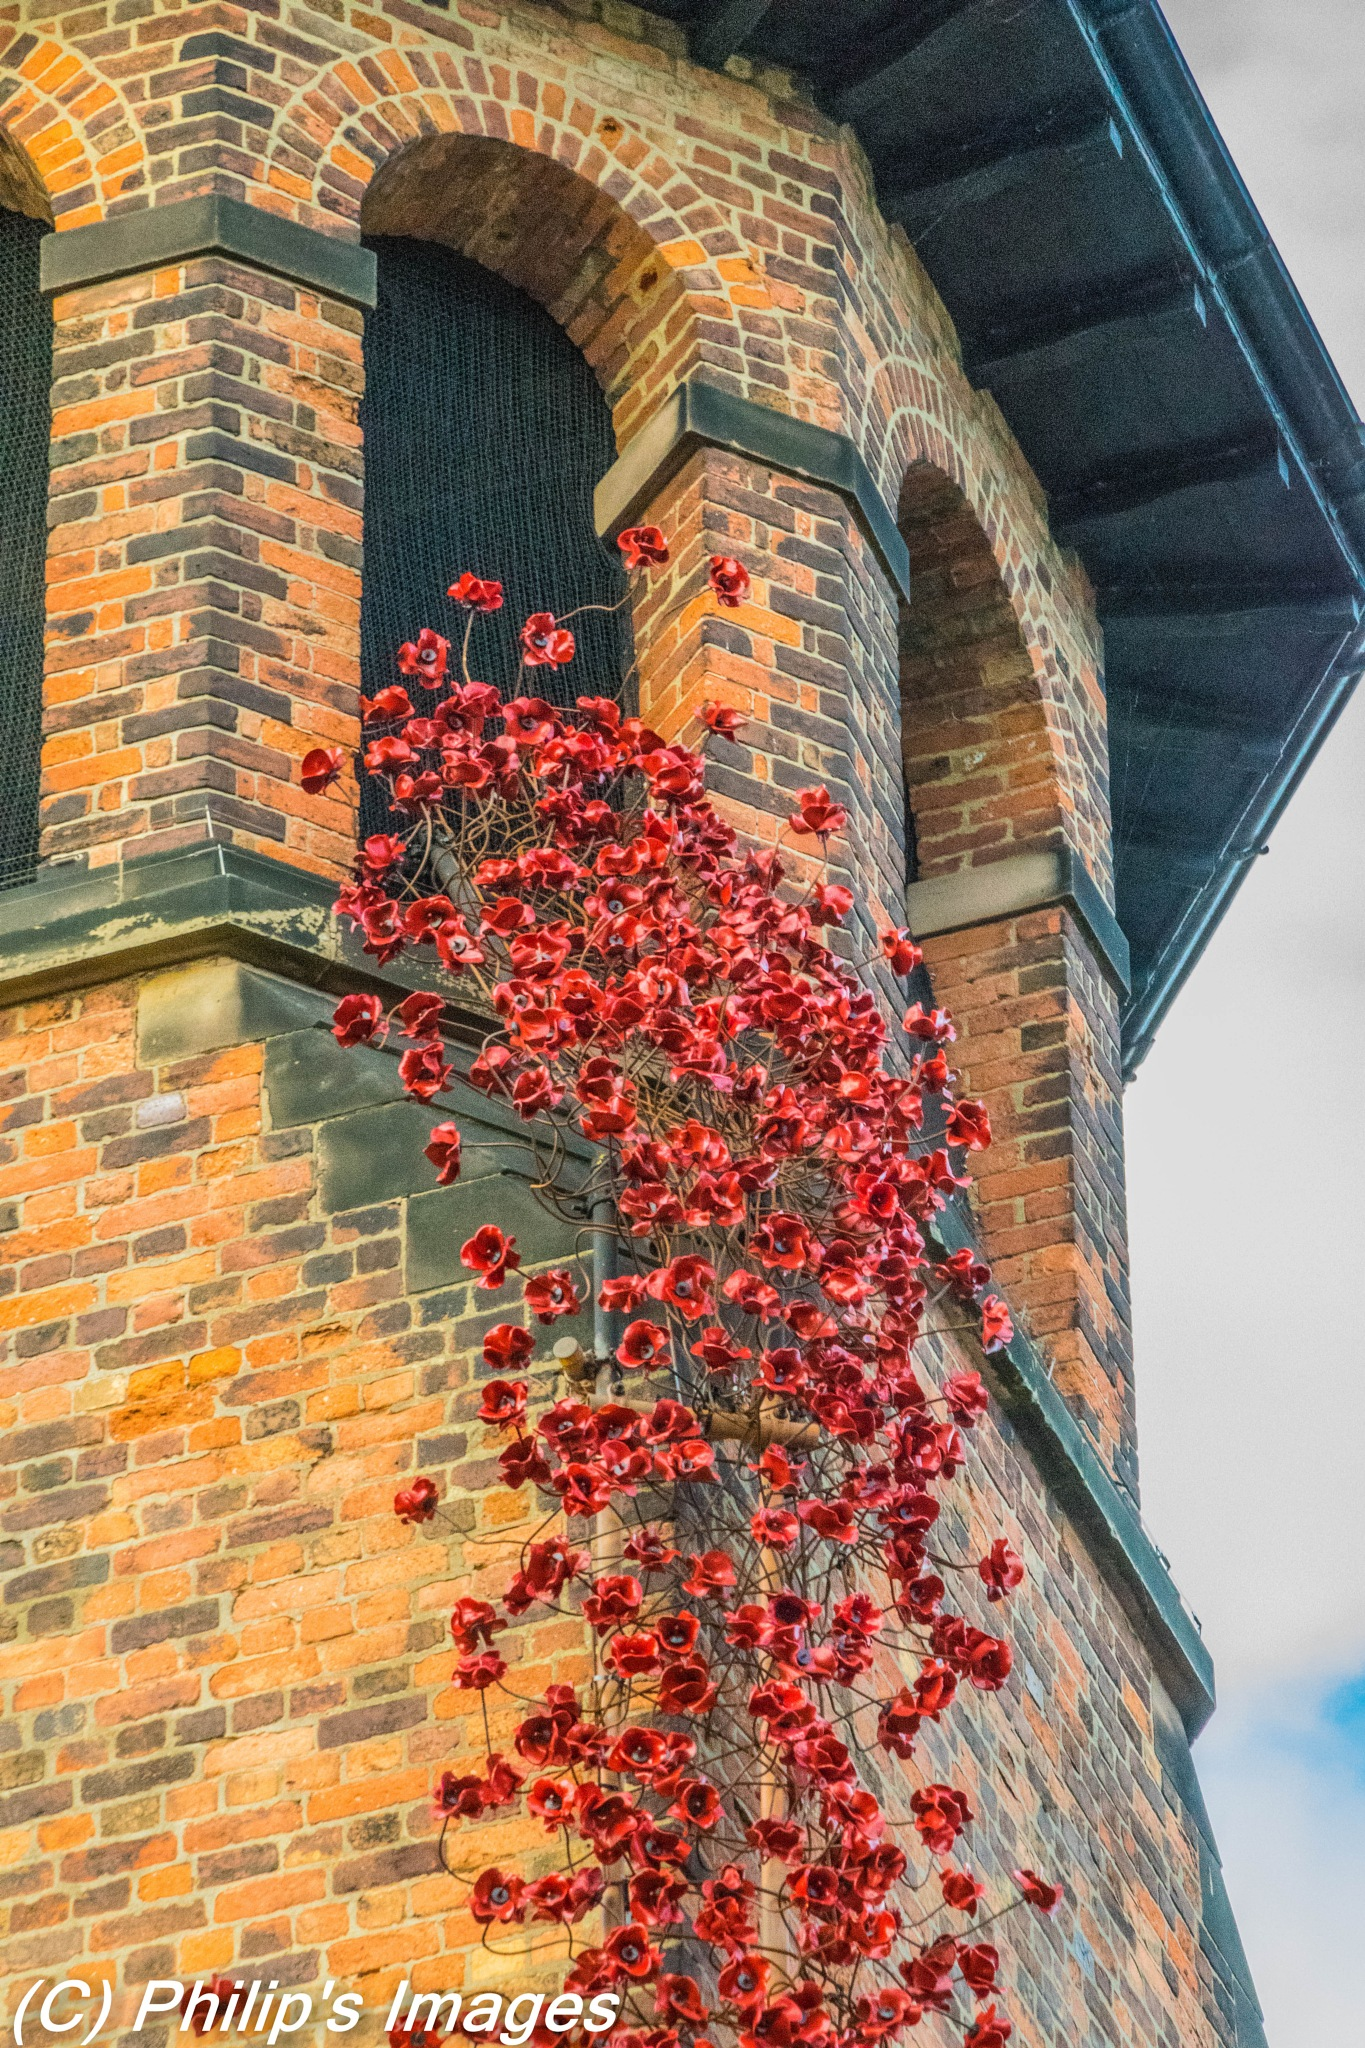 The Weeping Window. by philips images